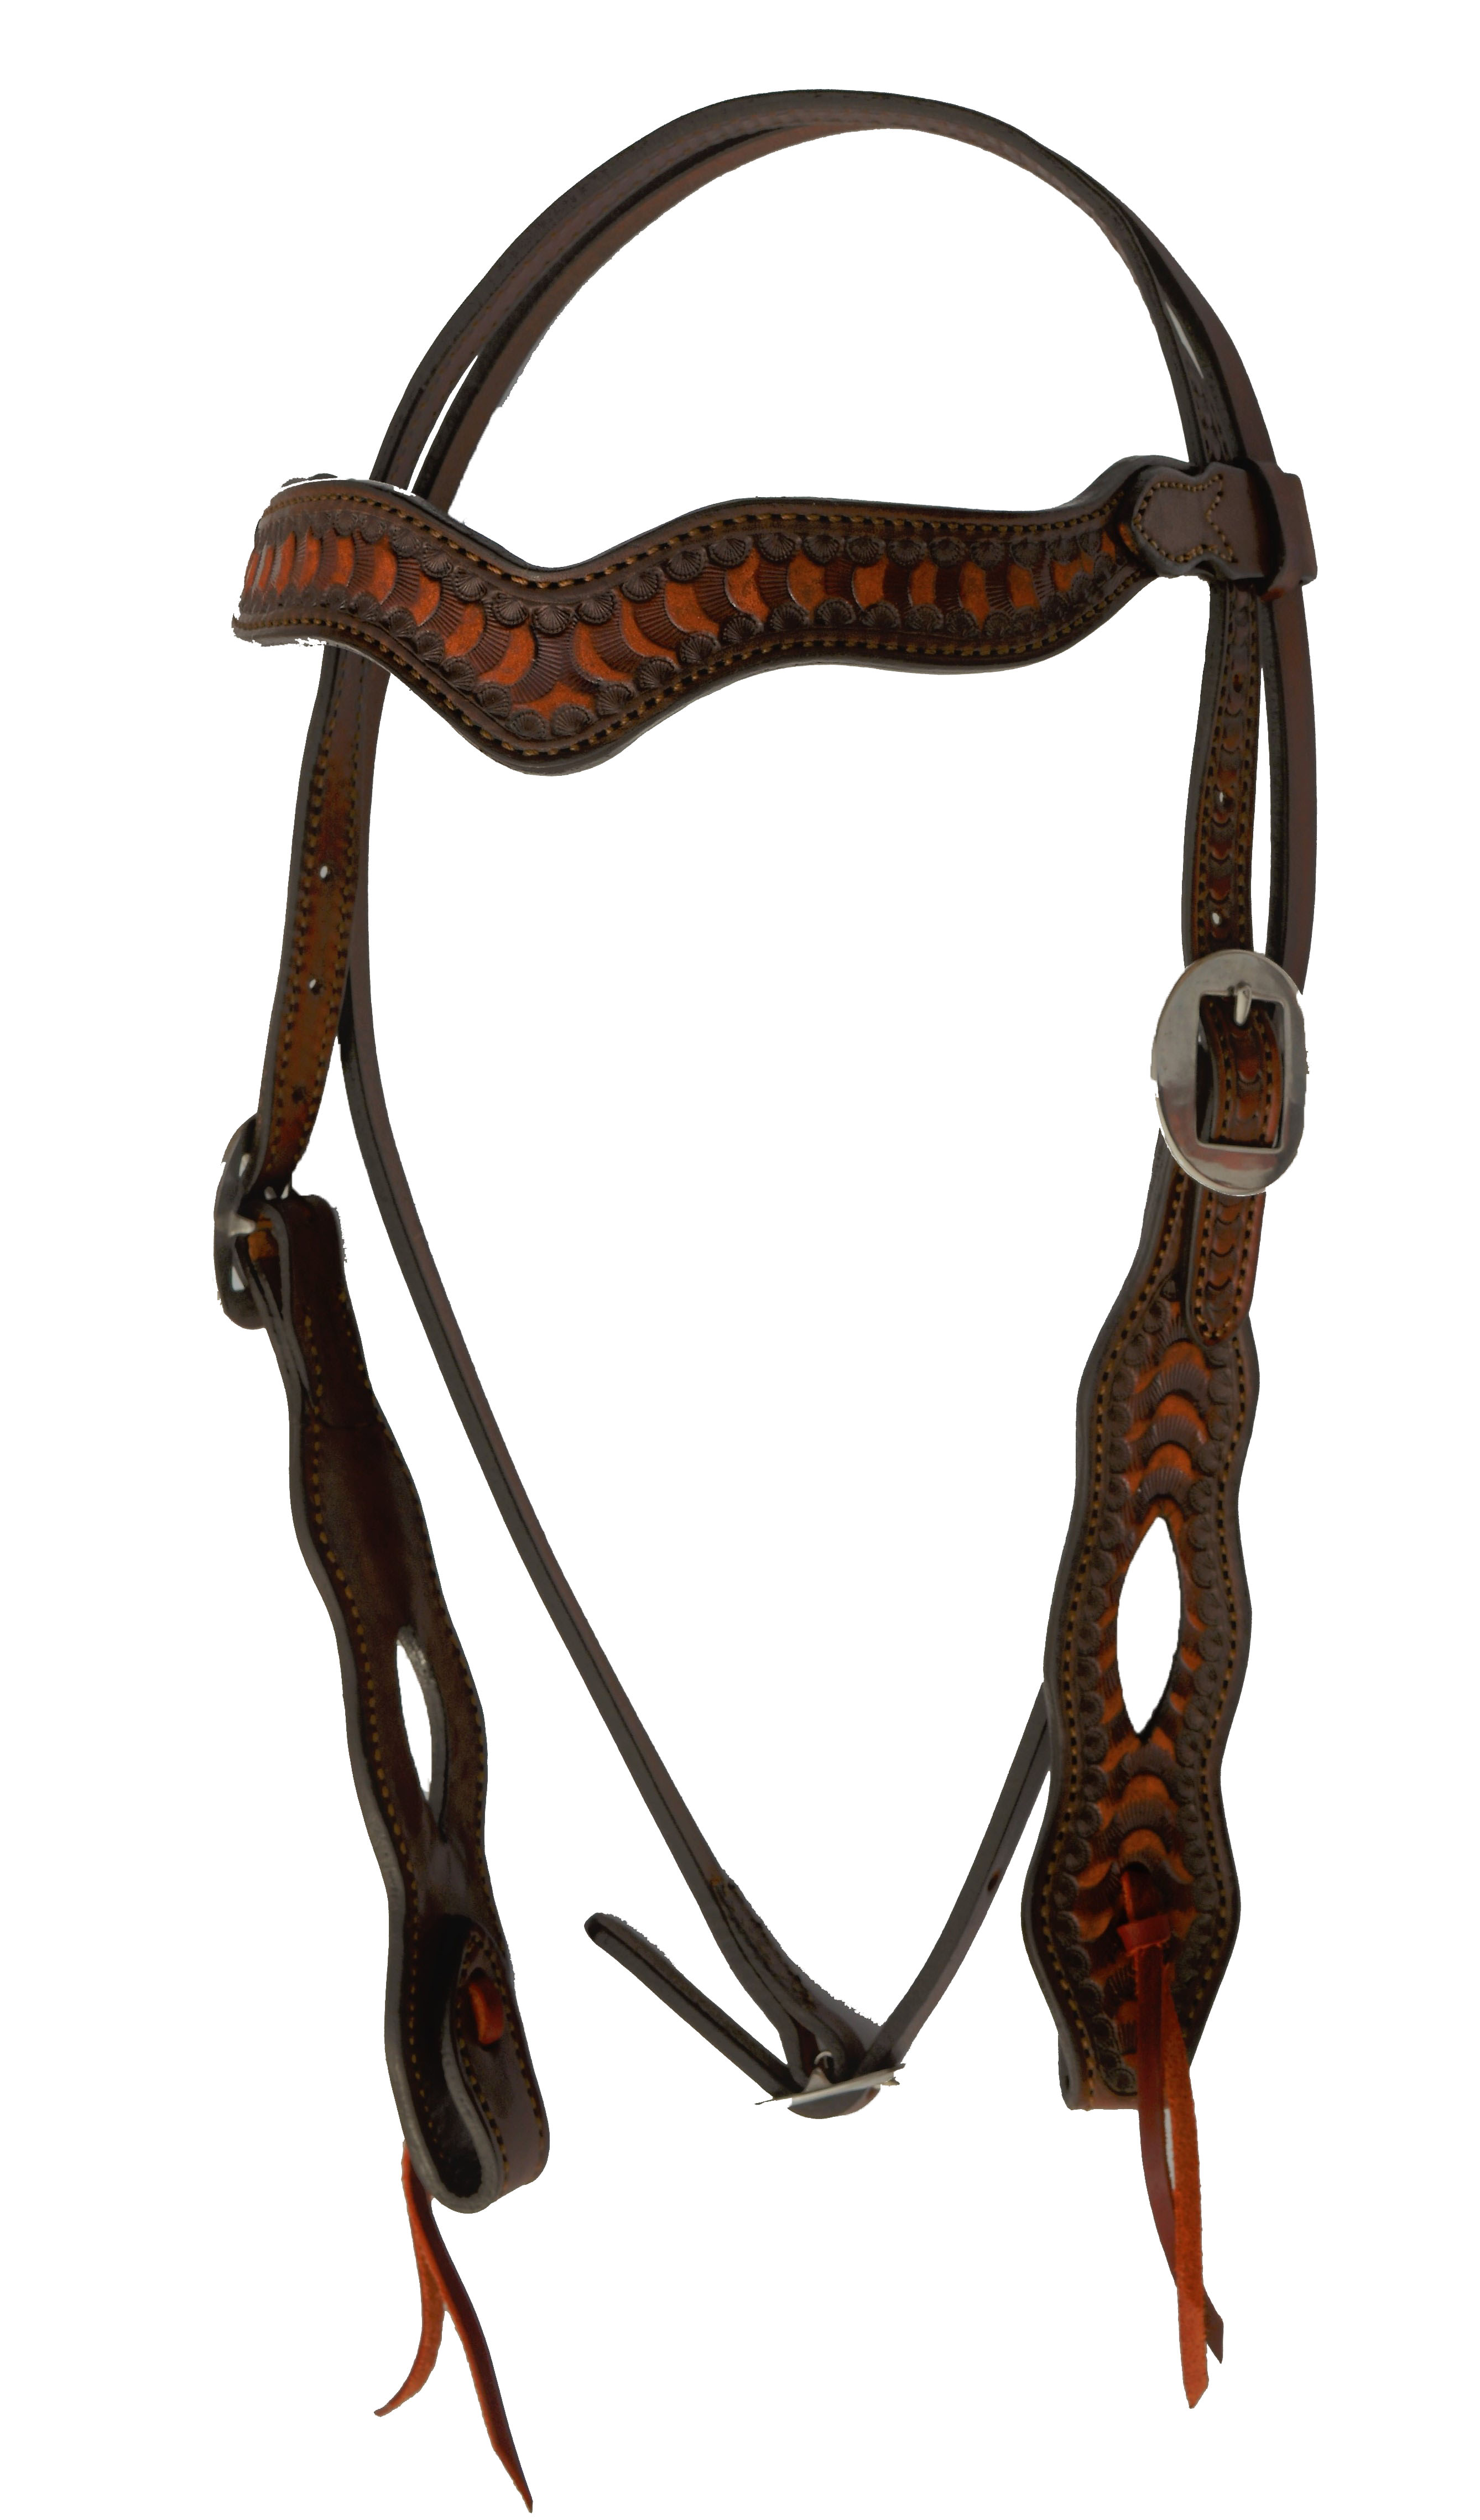 WAVE STYLE HEADSTALL WITH WAVE TOOLING